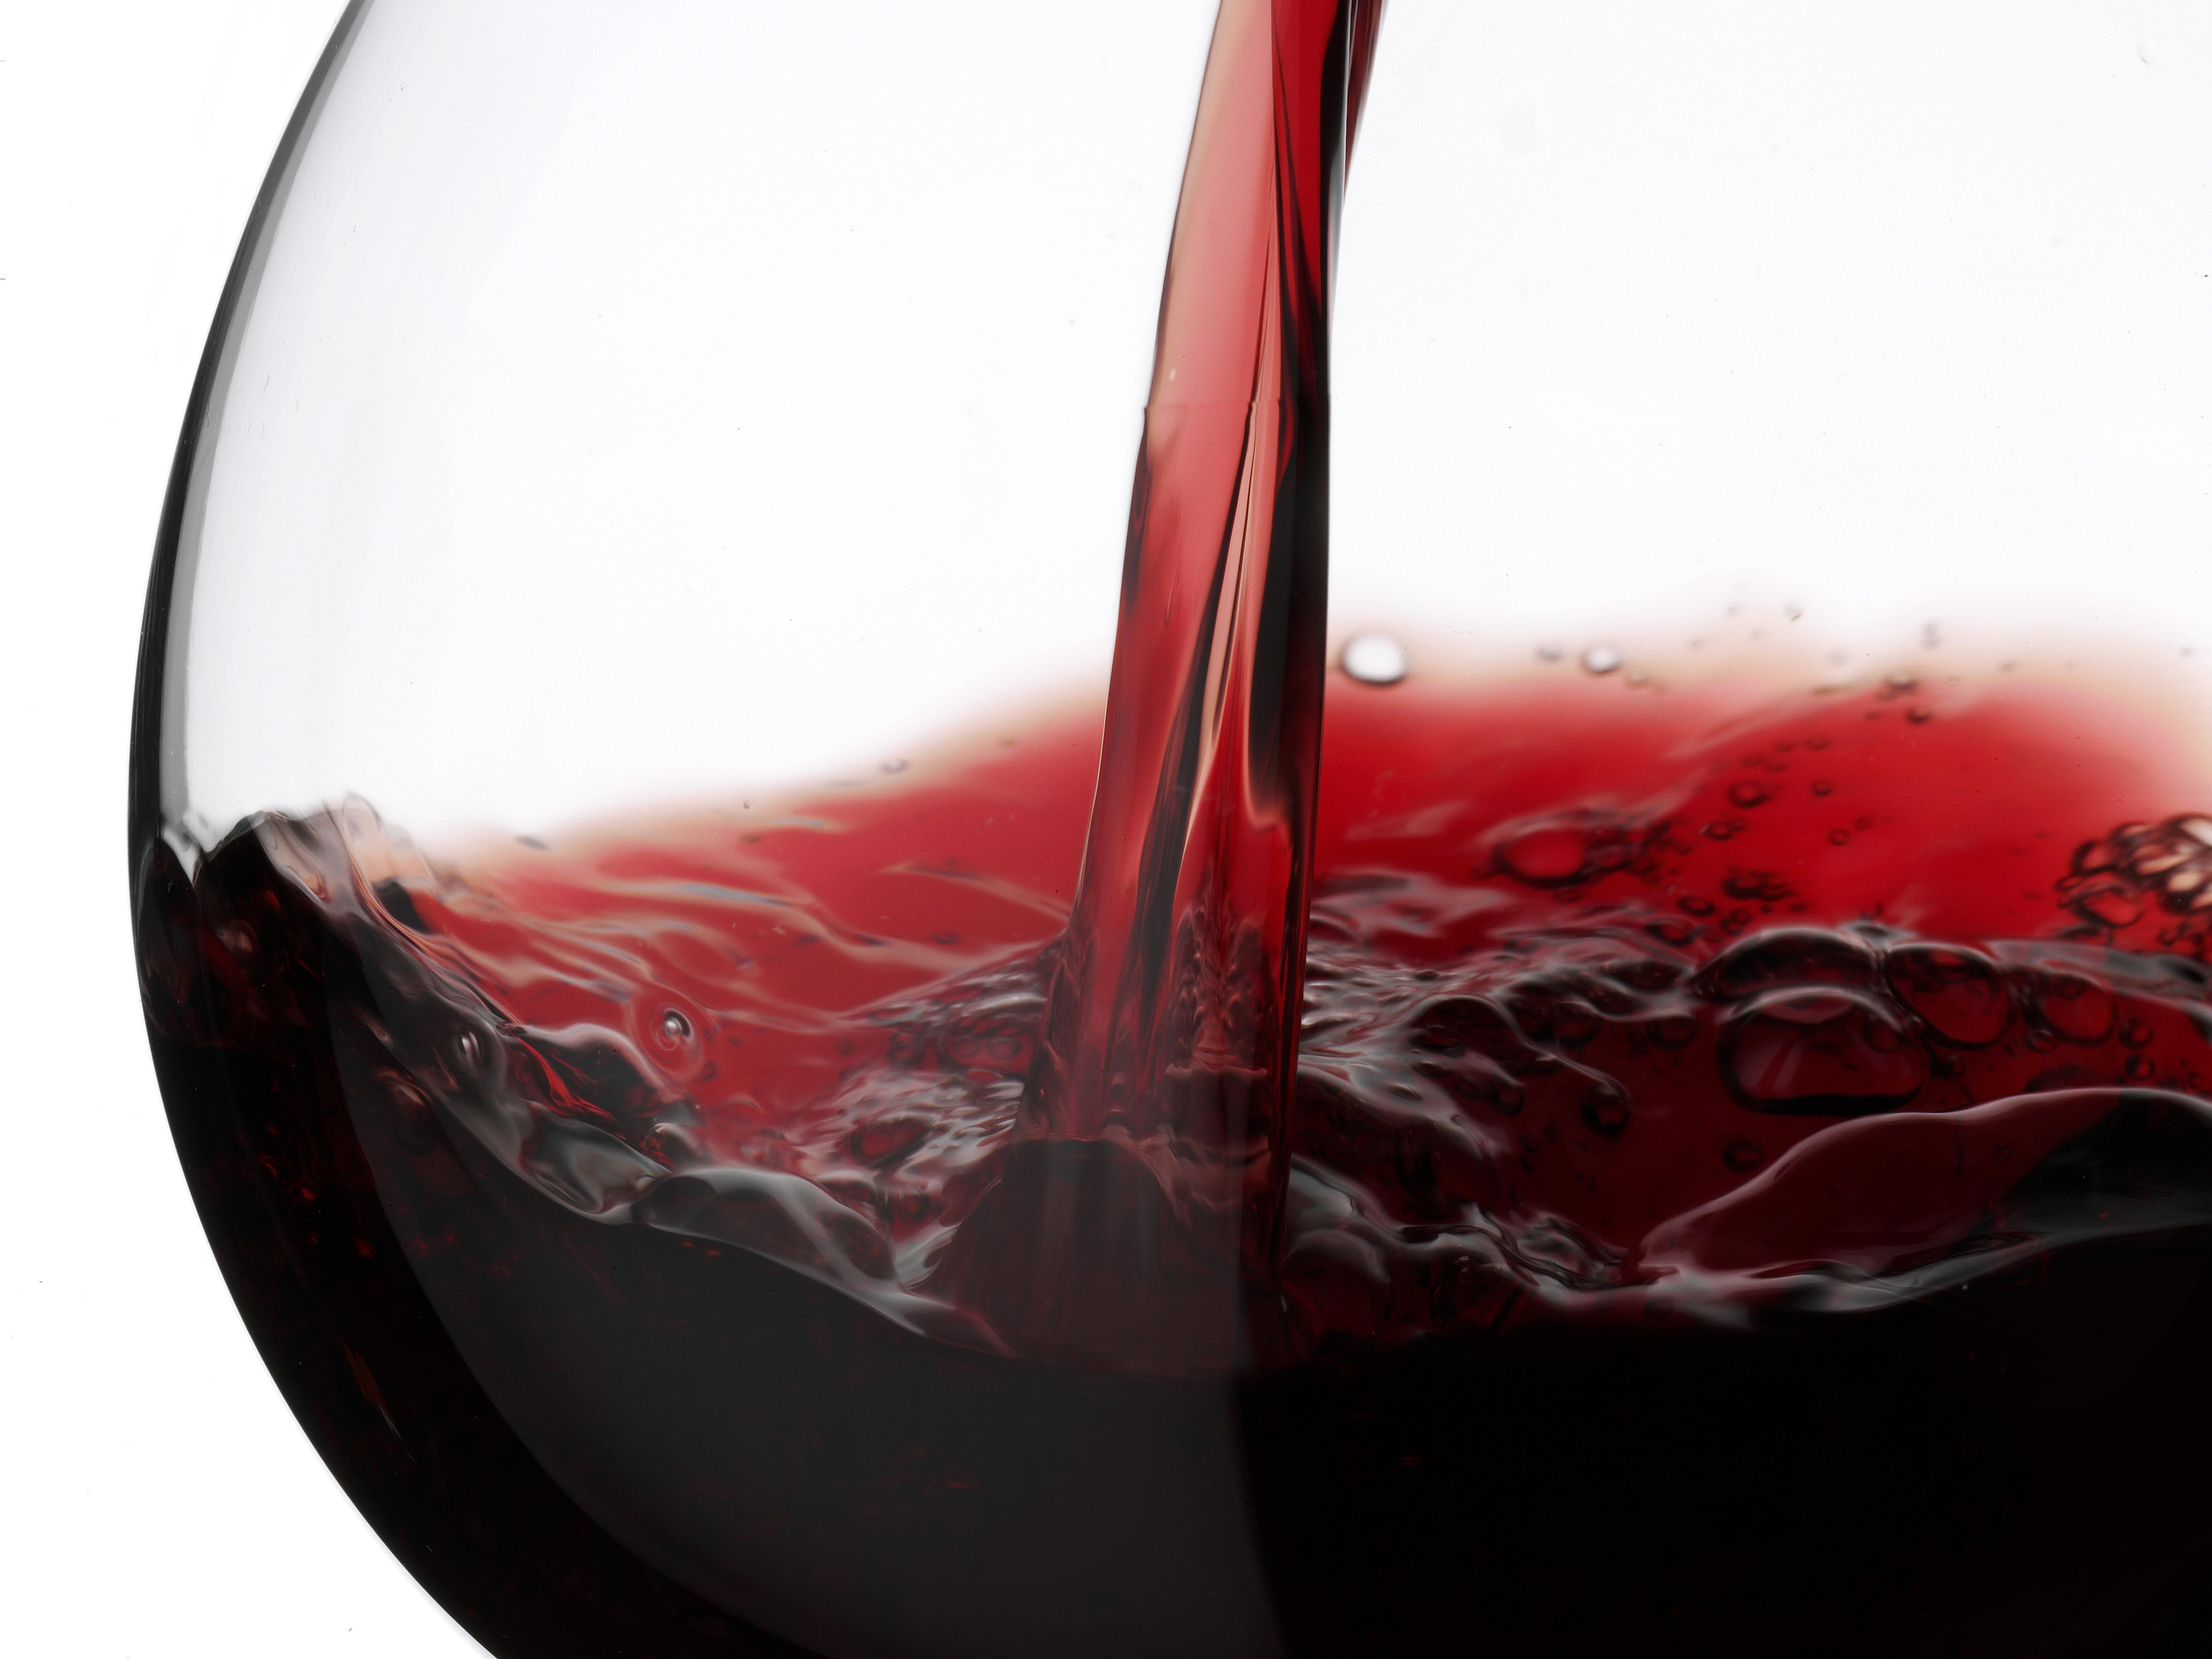 Wine being poured into a glass on a white background.